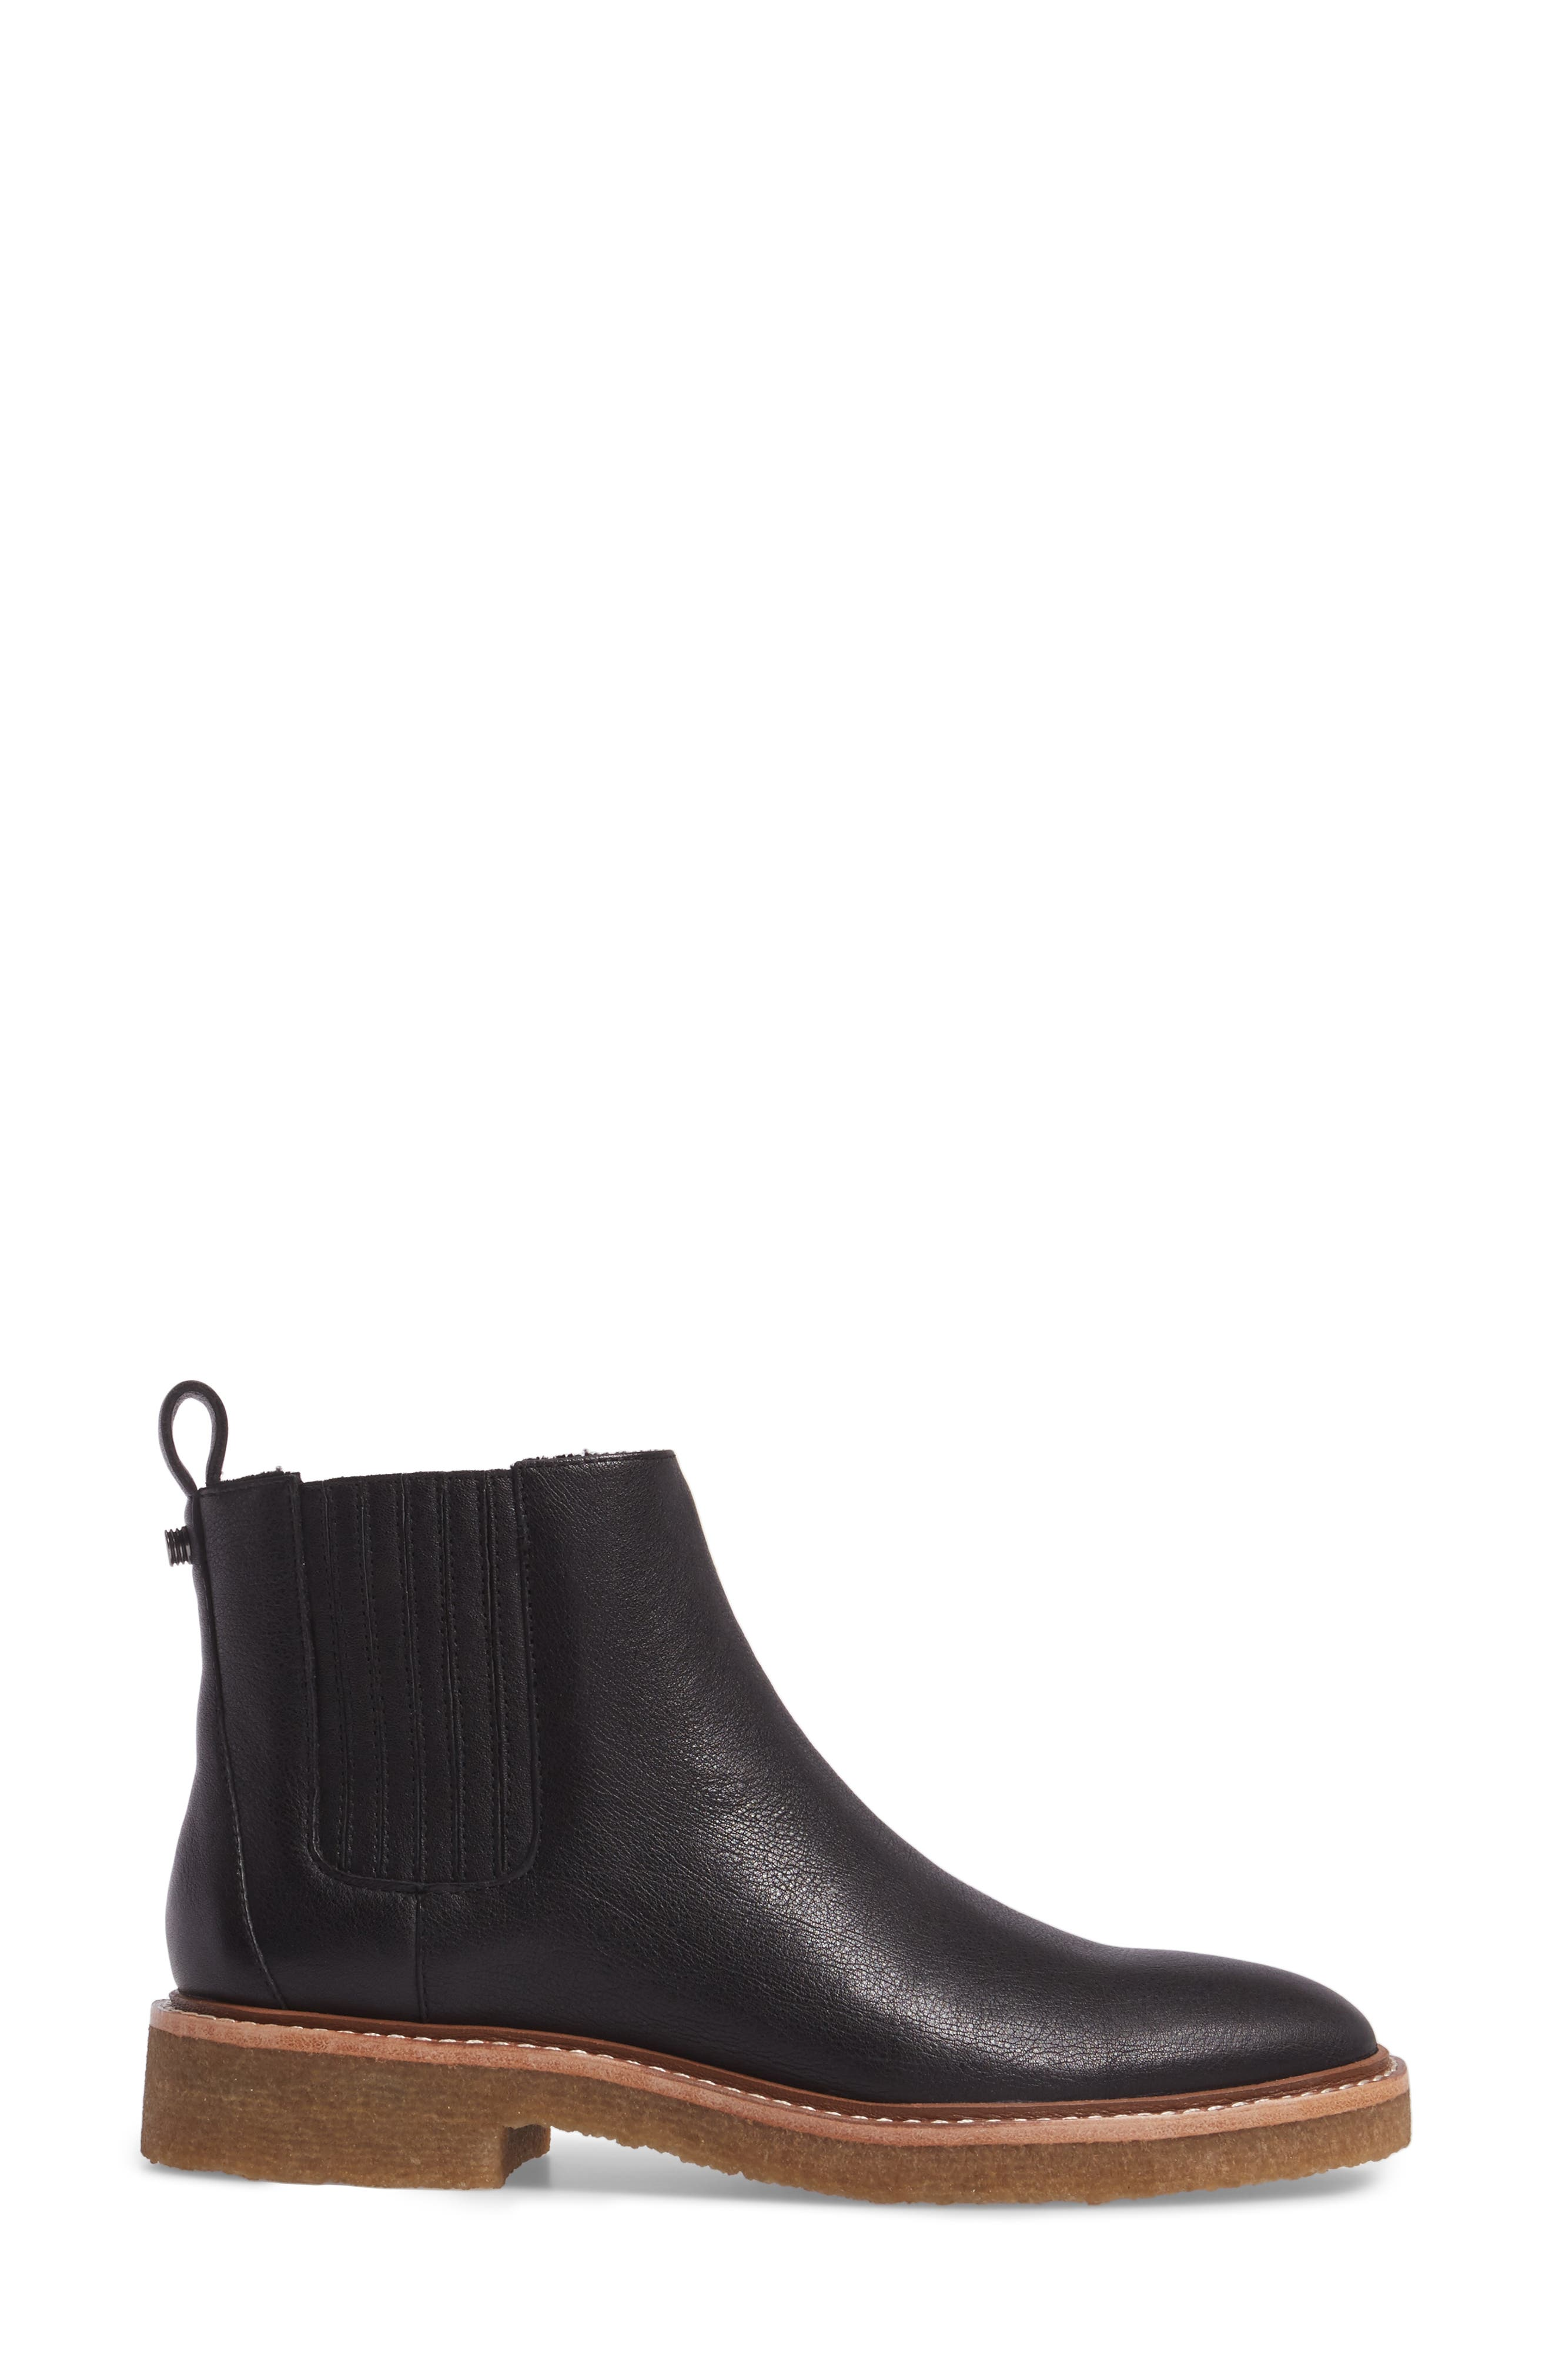 Chelsea Faux Shearling Lined Boot,                             Alternate thumbnail 3, color,                             BLACK LEATHER